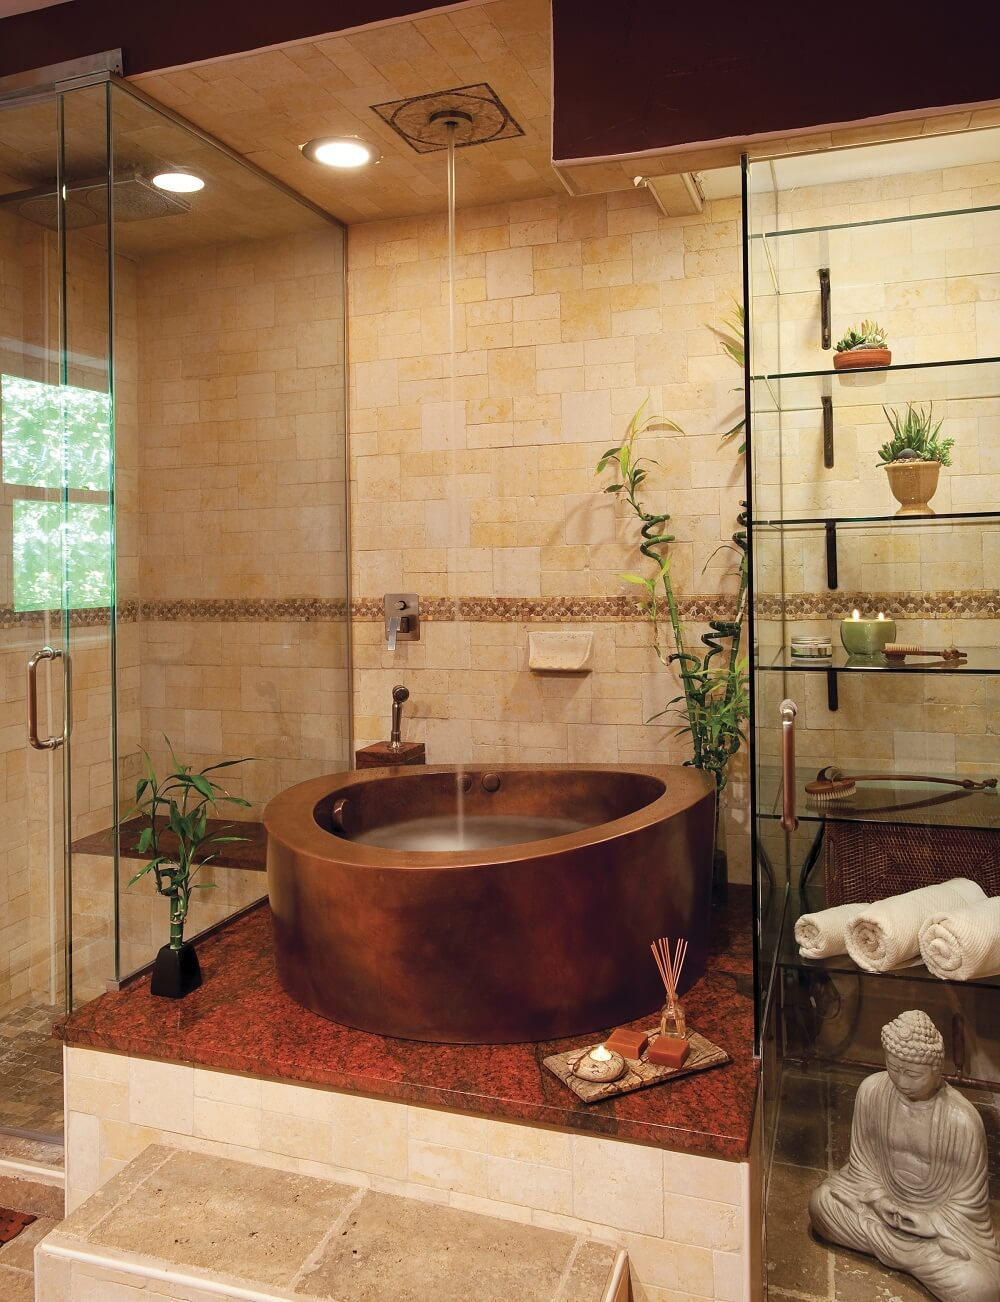 Groovy Japanese Soaking Tubs Japanese Baths Outdoor Soaking Tub Beutiful Home Inspiration Truamahrainfo